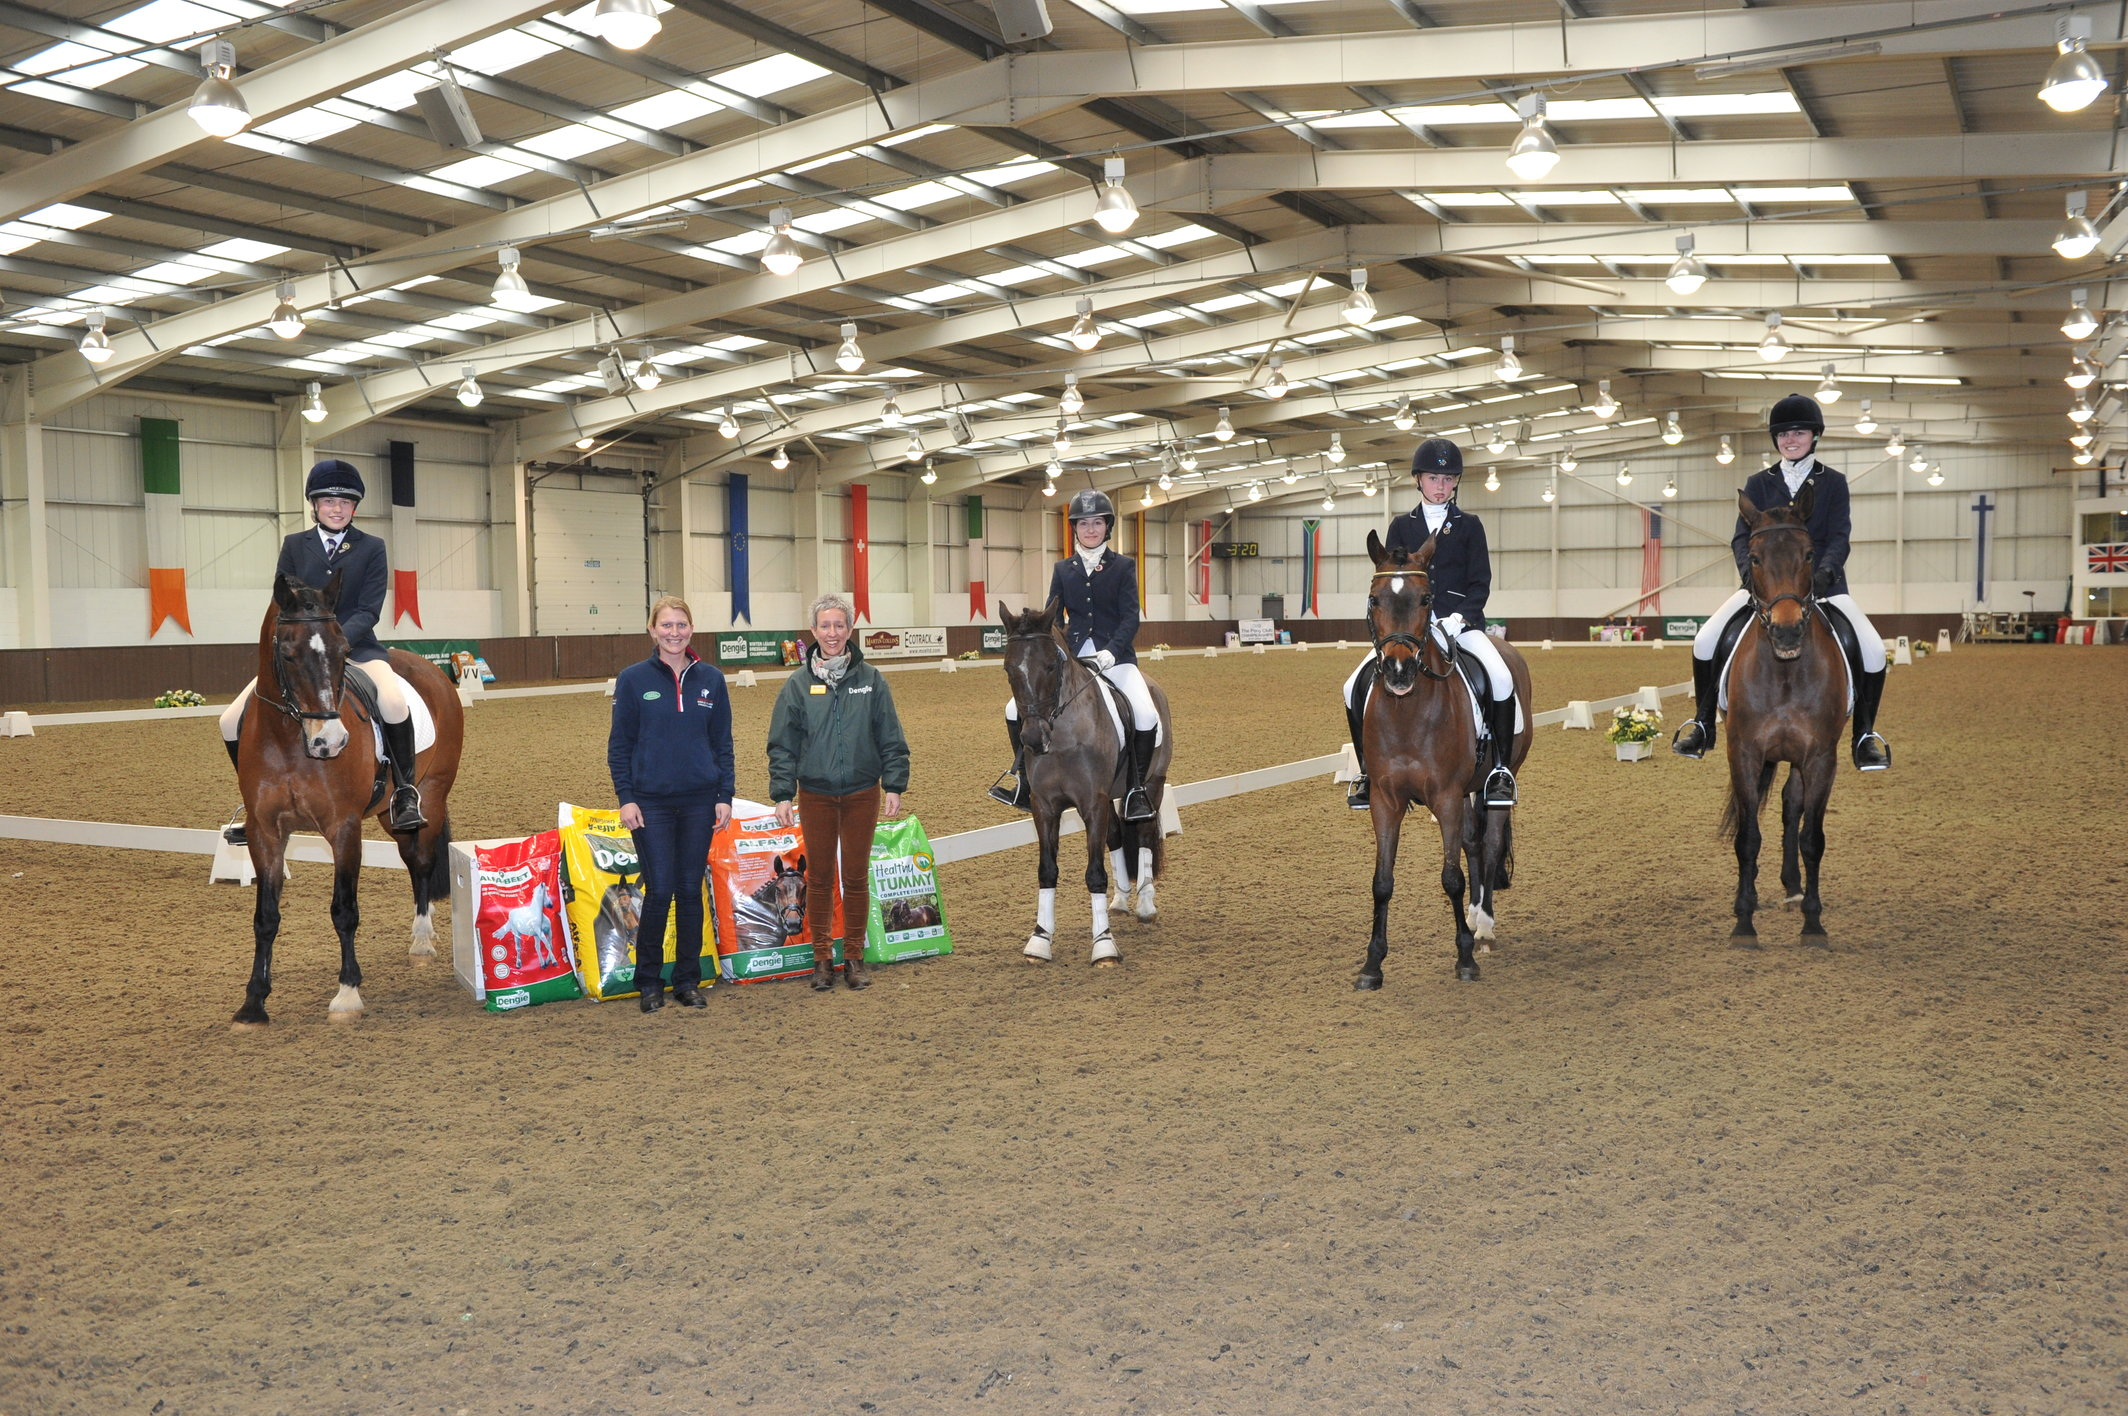 rsz_winners_1-3rd_with_lisa_wilson_dengie_and_gb_dressage_rider_hayley_watson-greaves_2